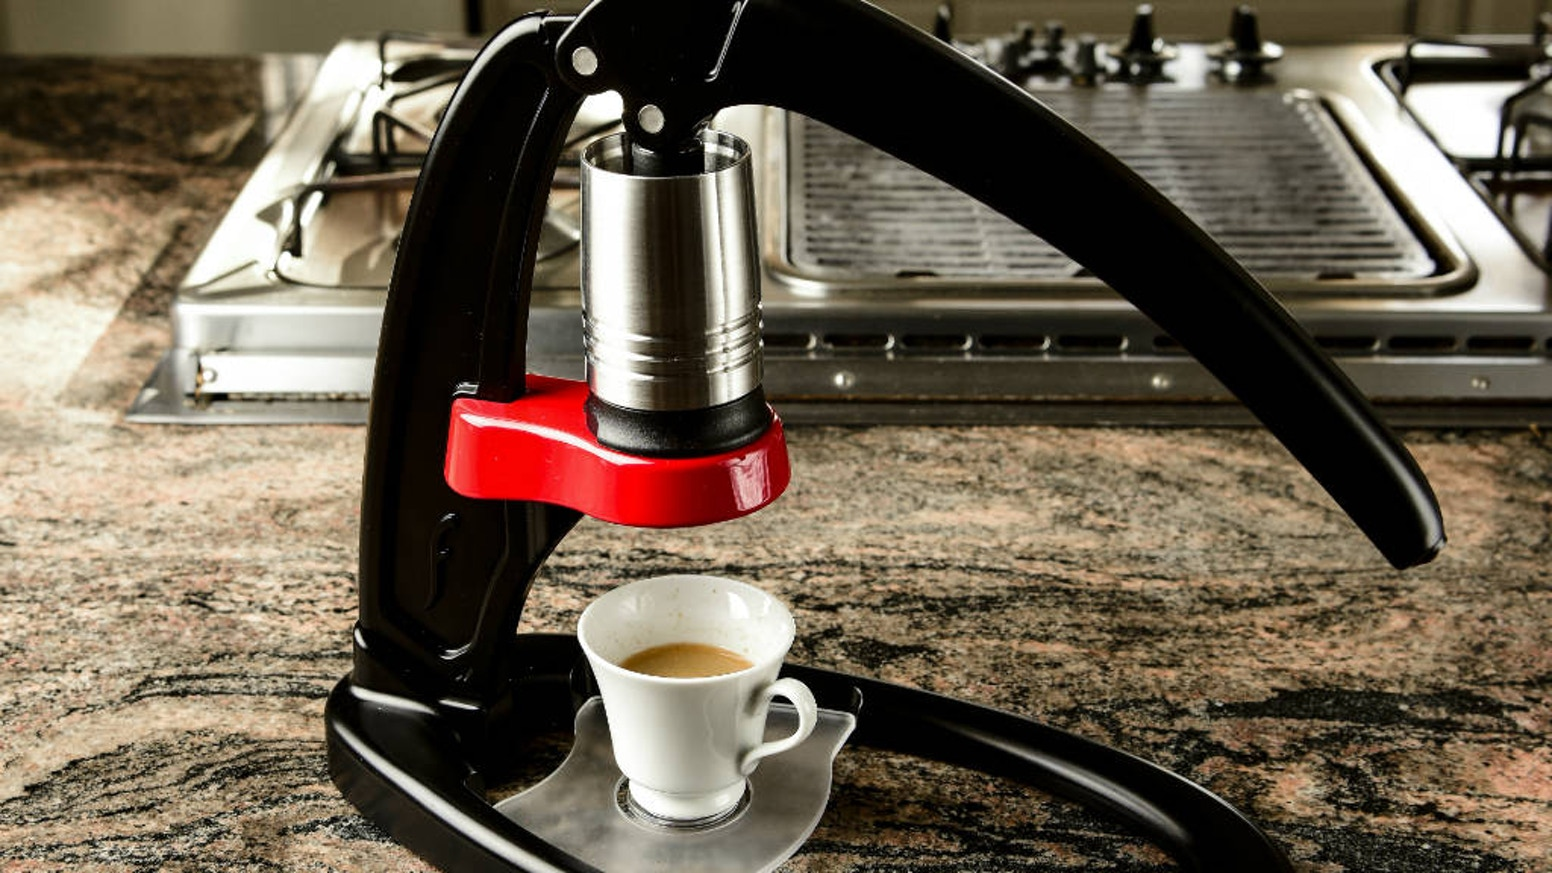 Minimalist, robust, and portable espresso maker lets you craft - by hand - professional quality espresso, exactly how you like it. Thank you Backers! Our project is fully funded. Visit our website www.flairespresso.com to find out more!